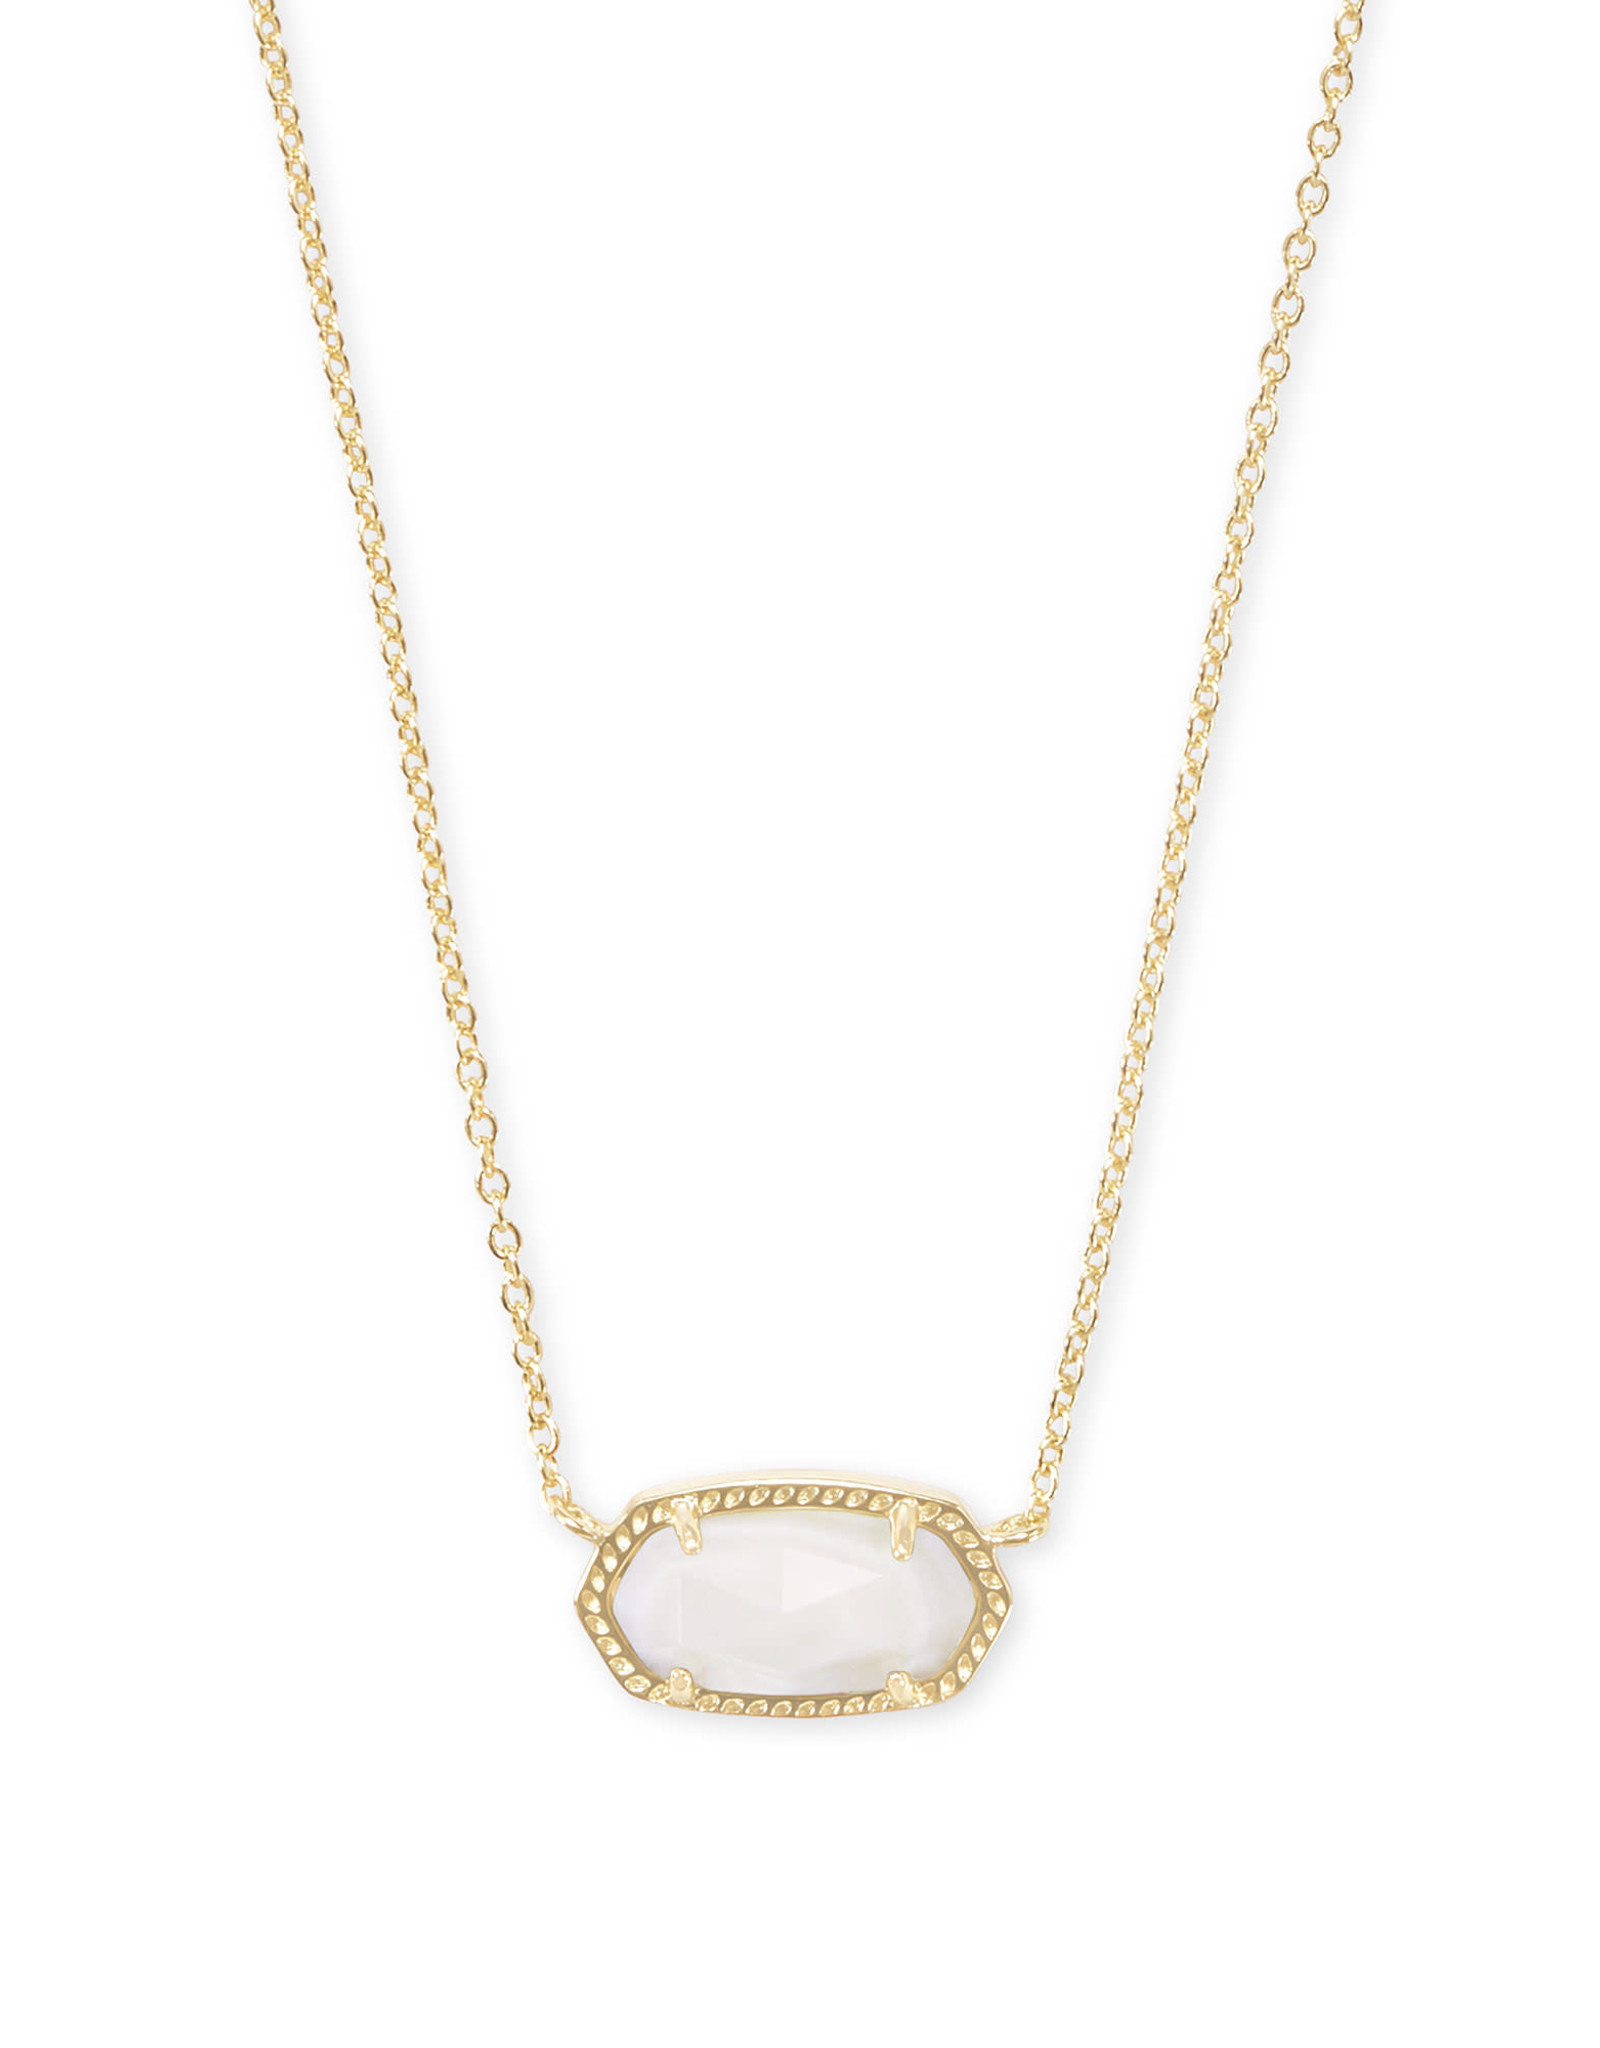 Kendra Scott Elisa Necklace - White MOP/Gold